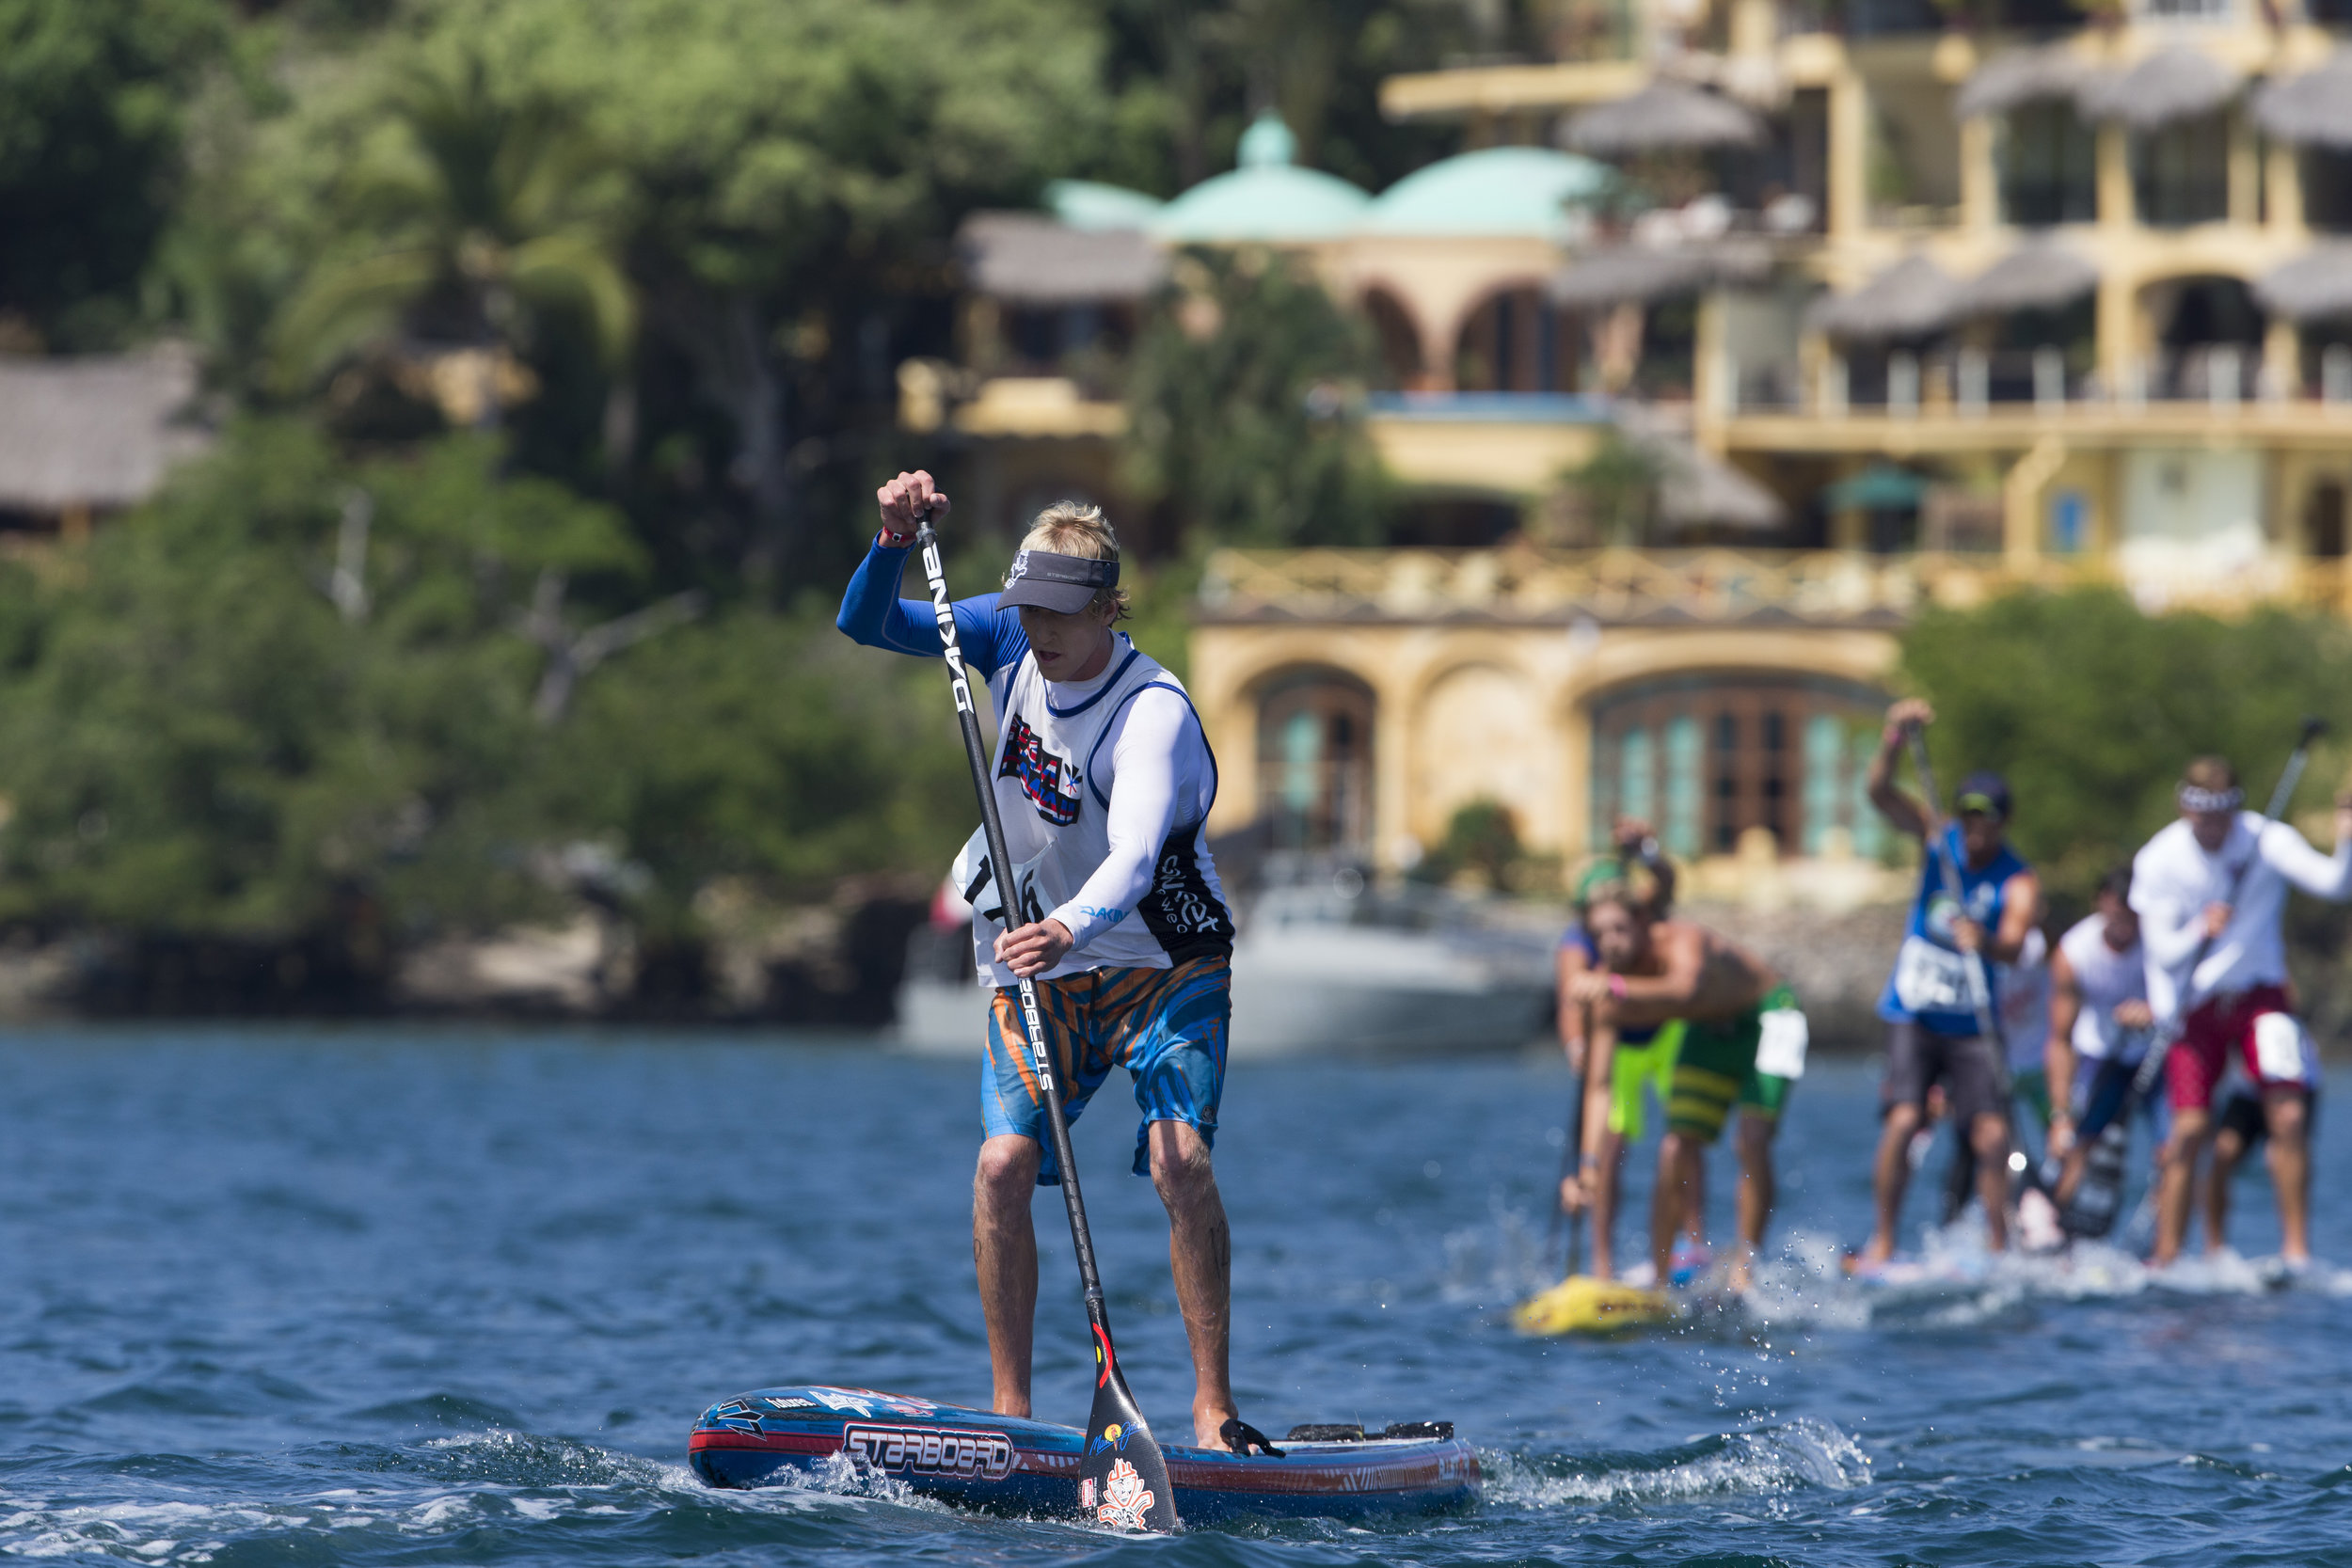 Connor Baxter, the top ranked SUP racer in the world (according to  supracer.com ), will be competing in all three SUP racing disciplines in Denmark. Photo: ISA / Brian Bielmann